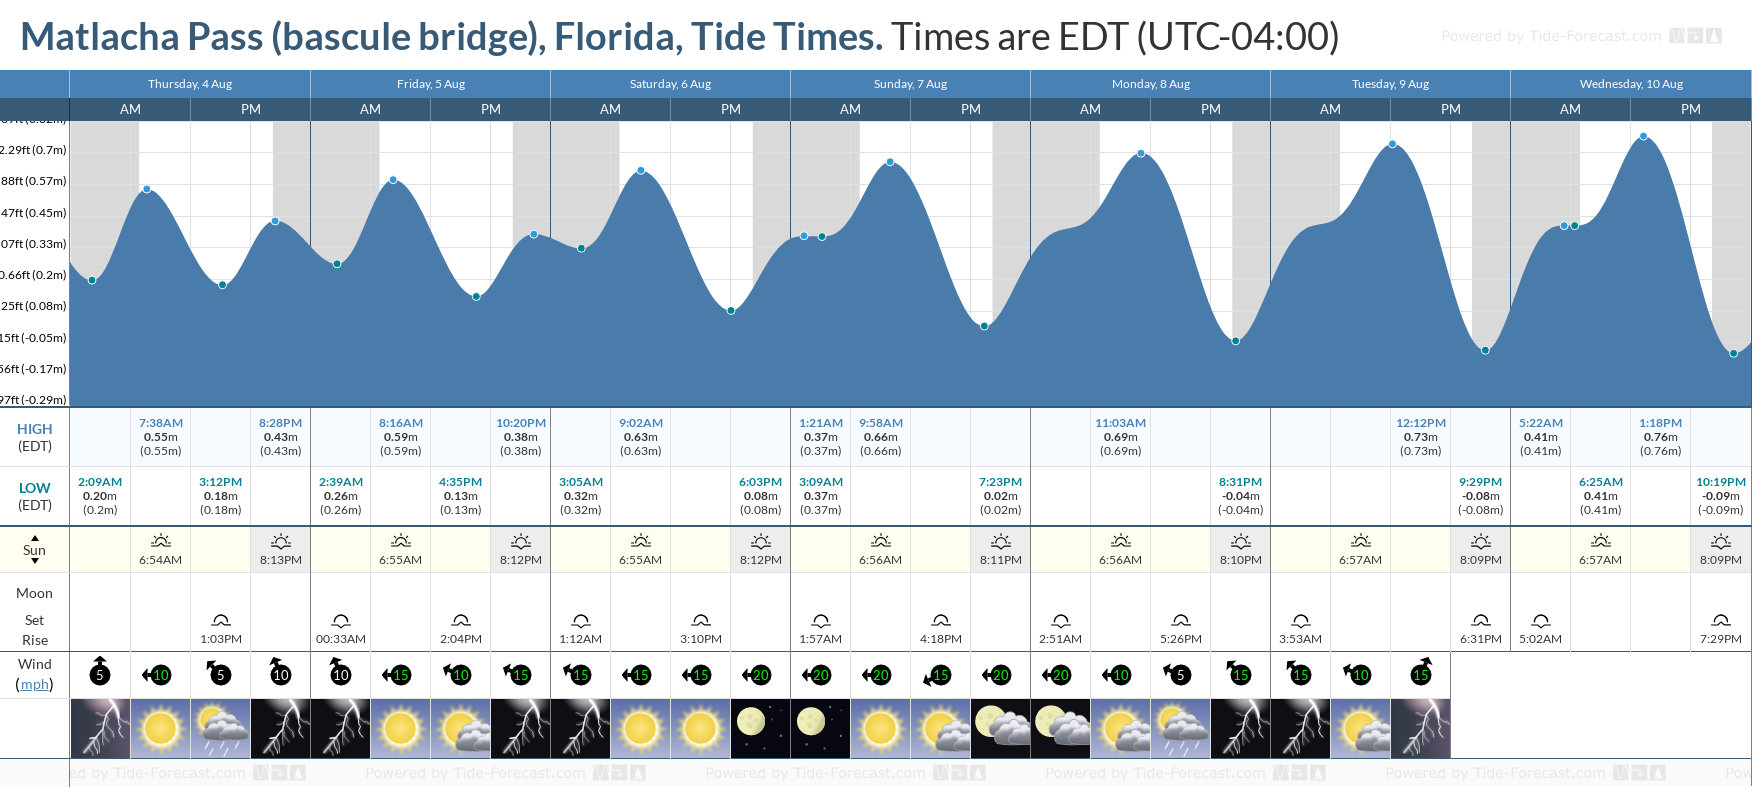 Matlacha Pass (bascule bridge), Florida Tide Chart including high and low tide tide times for the next 7 days